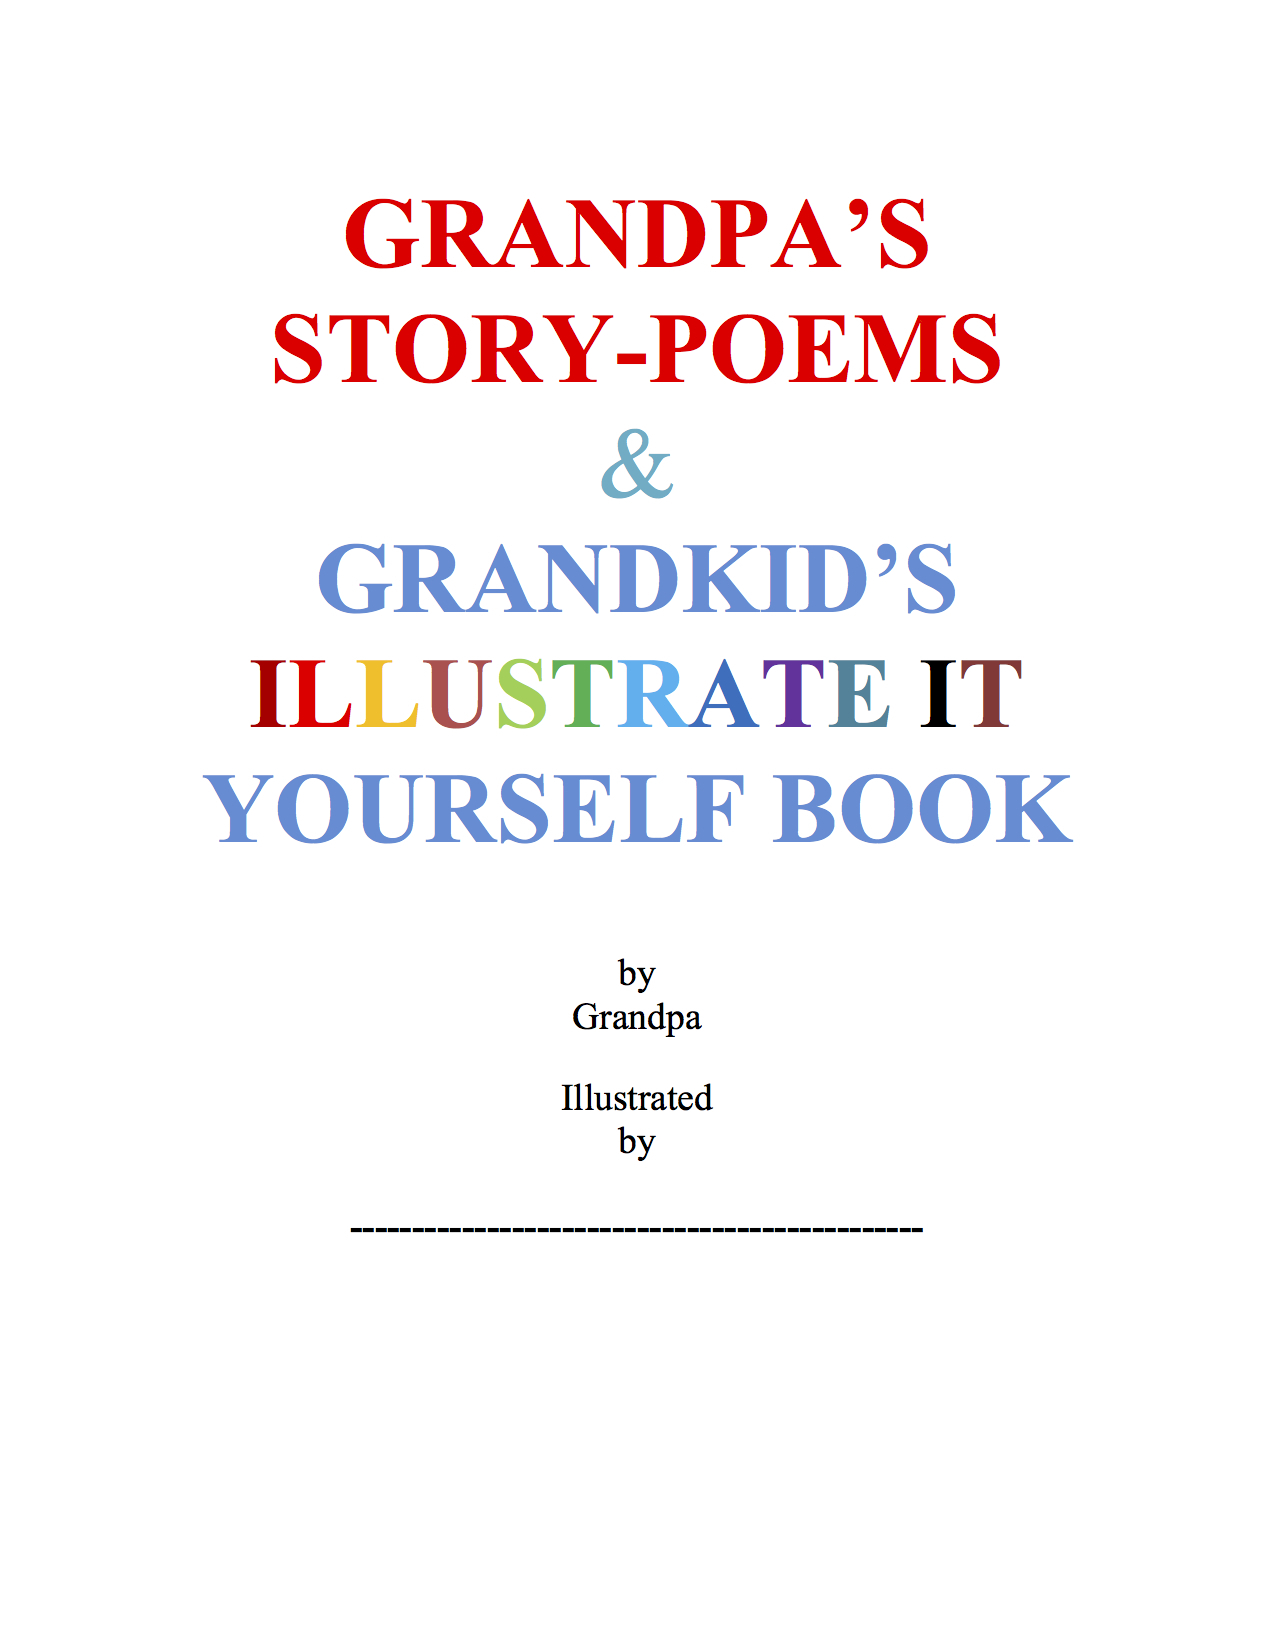 Grandpa's Story-Poems & Grandkid's Illustrate It Yourself Book